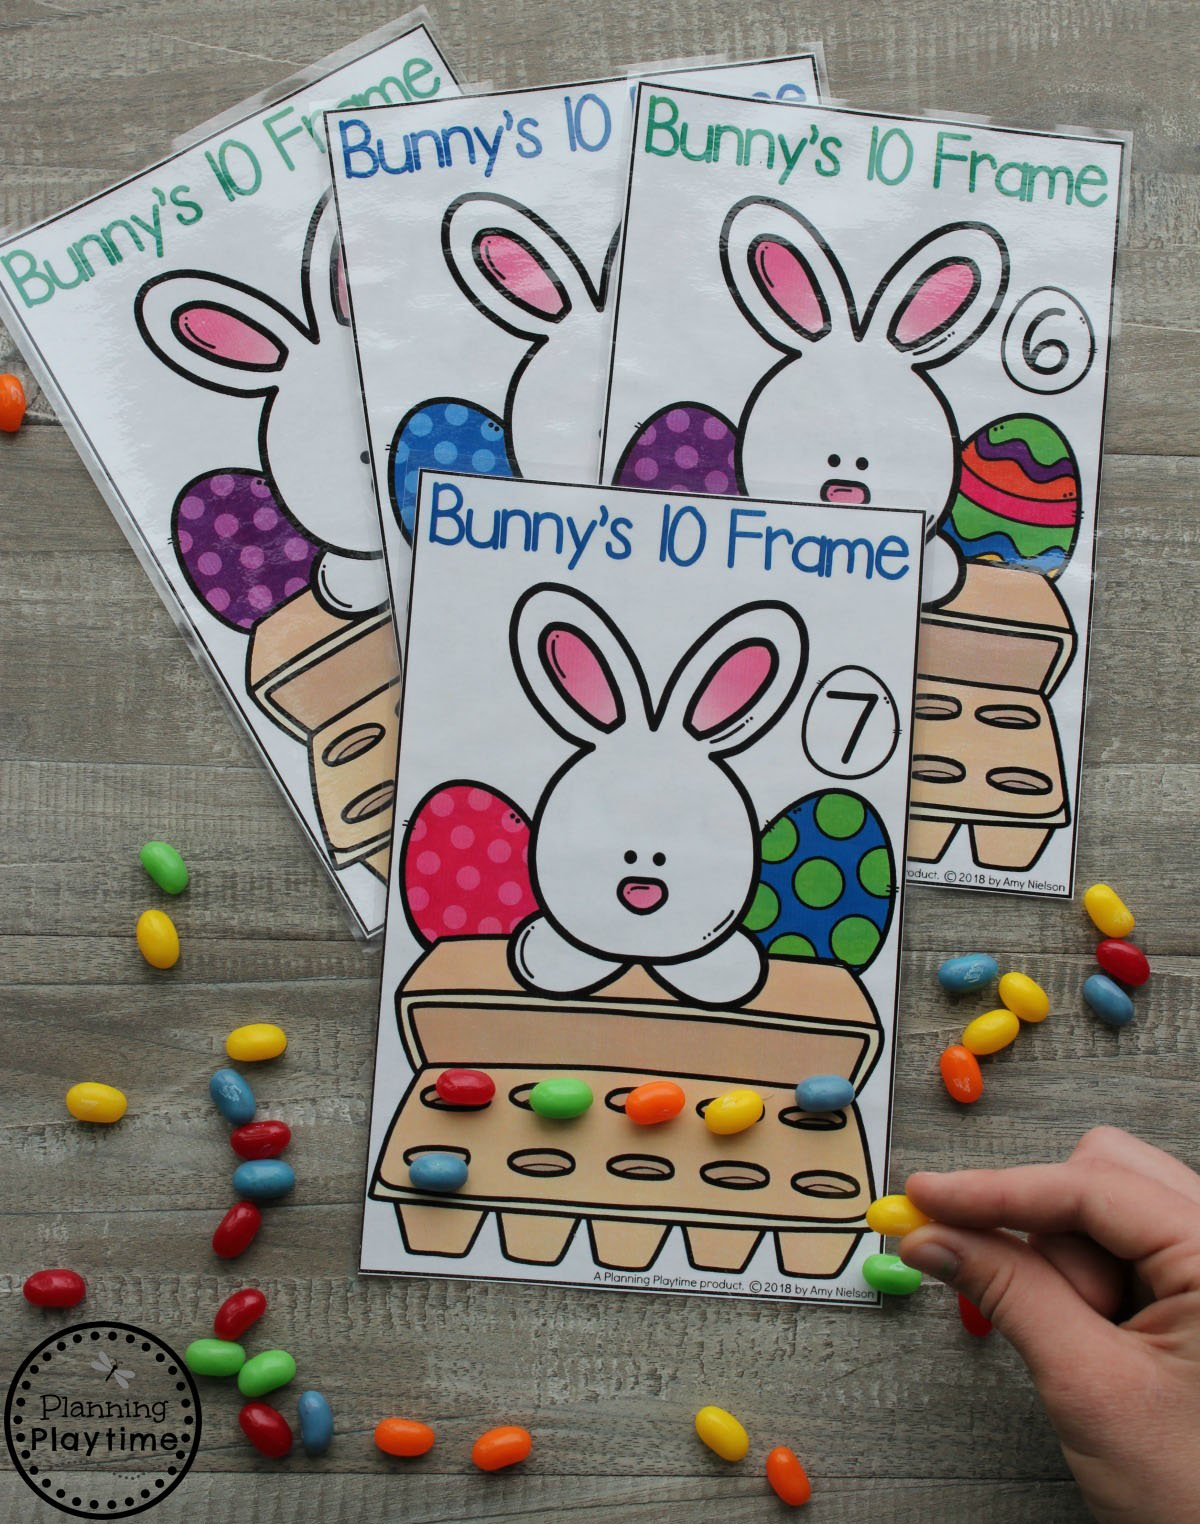 Preschool Counting Game for Easter. Easter Egg 10 Frames. #easter #preschool #easteractivities #easterpreschool #planningplaytime #preschoolmath